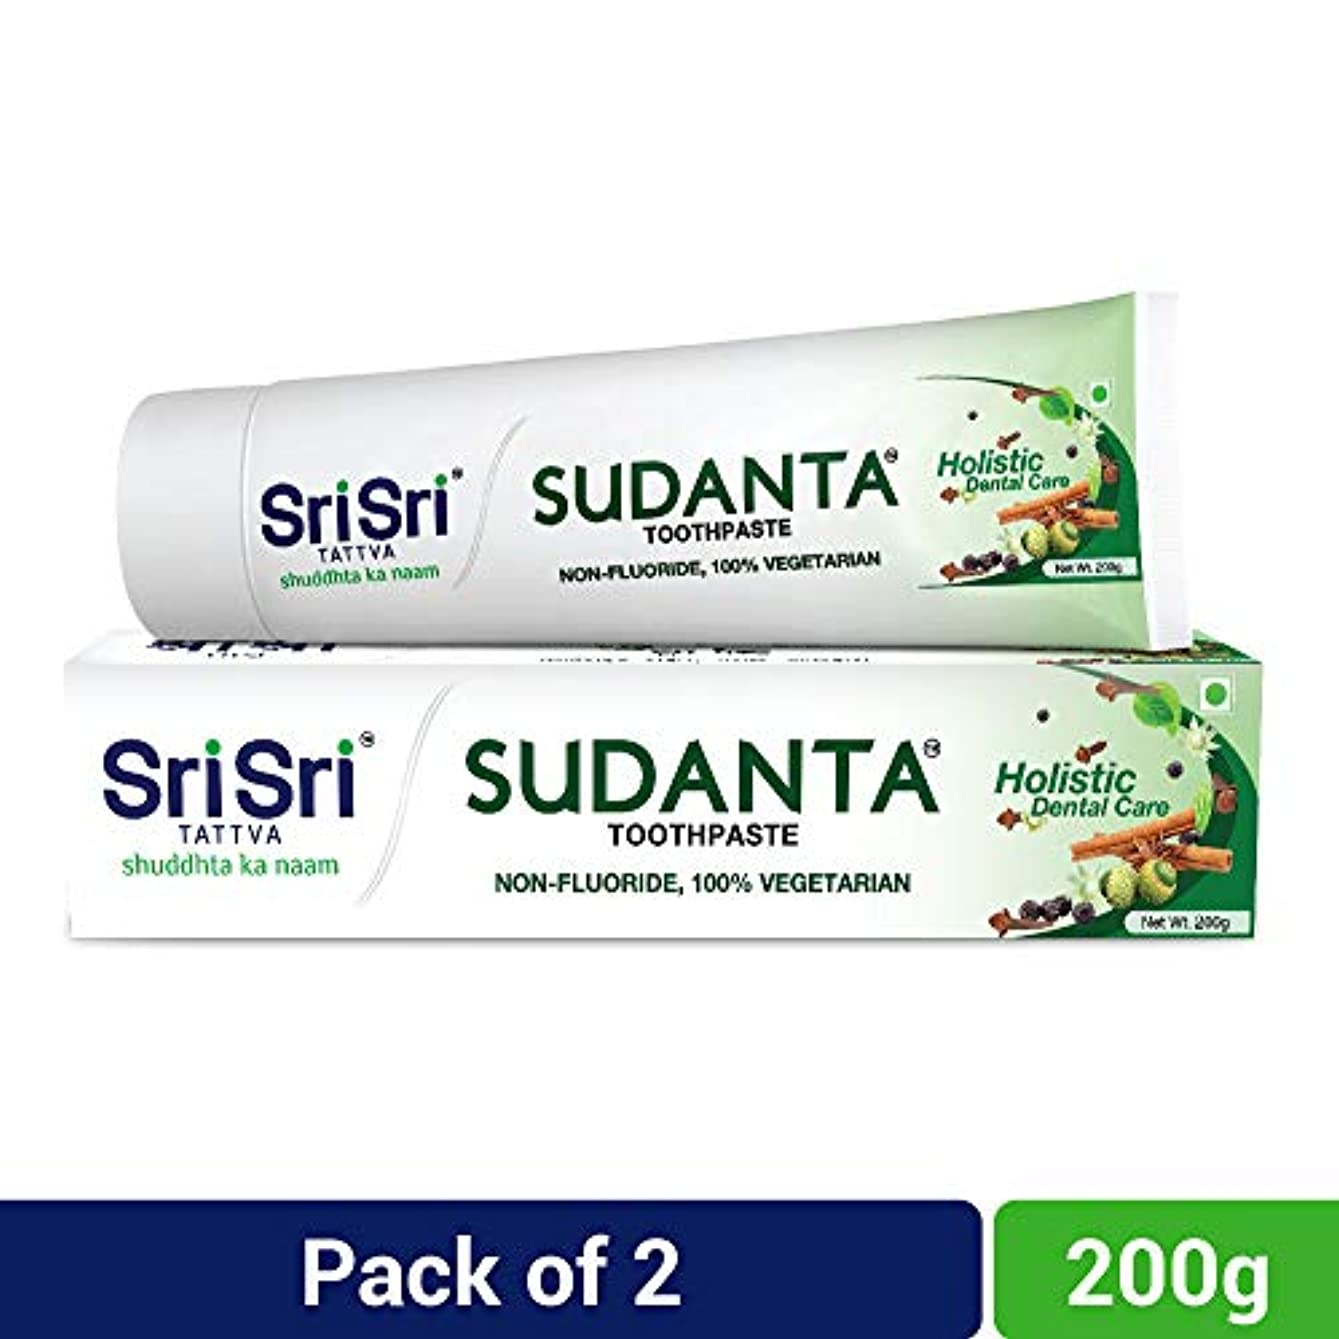 Sri Sri Tattva Sudanta Toothpaste (200 g) Pack of 2